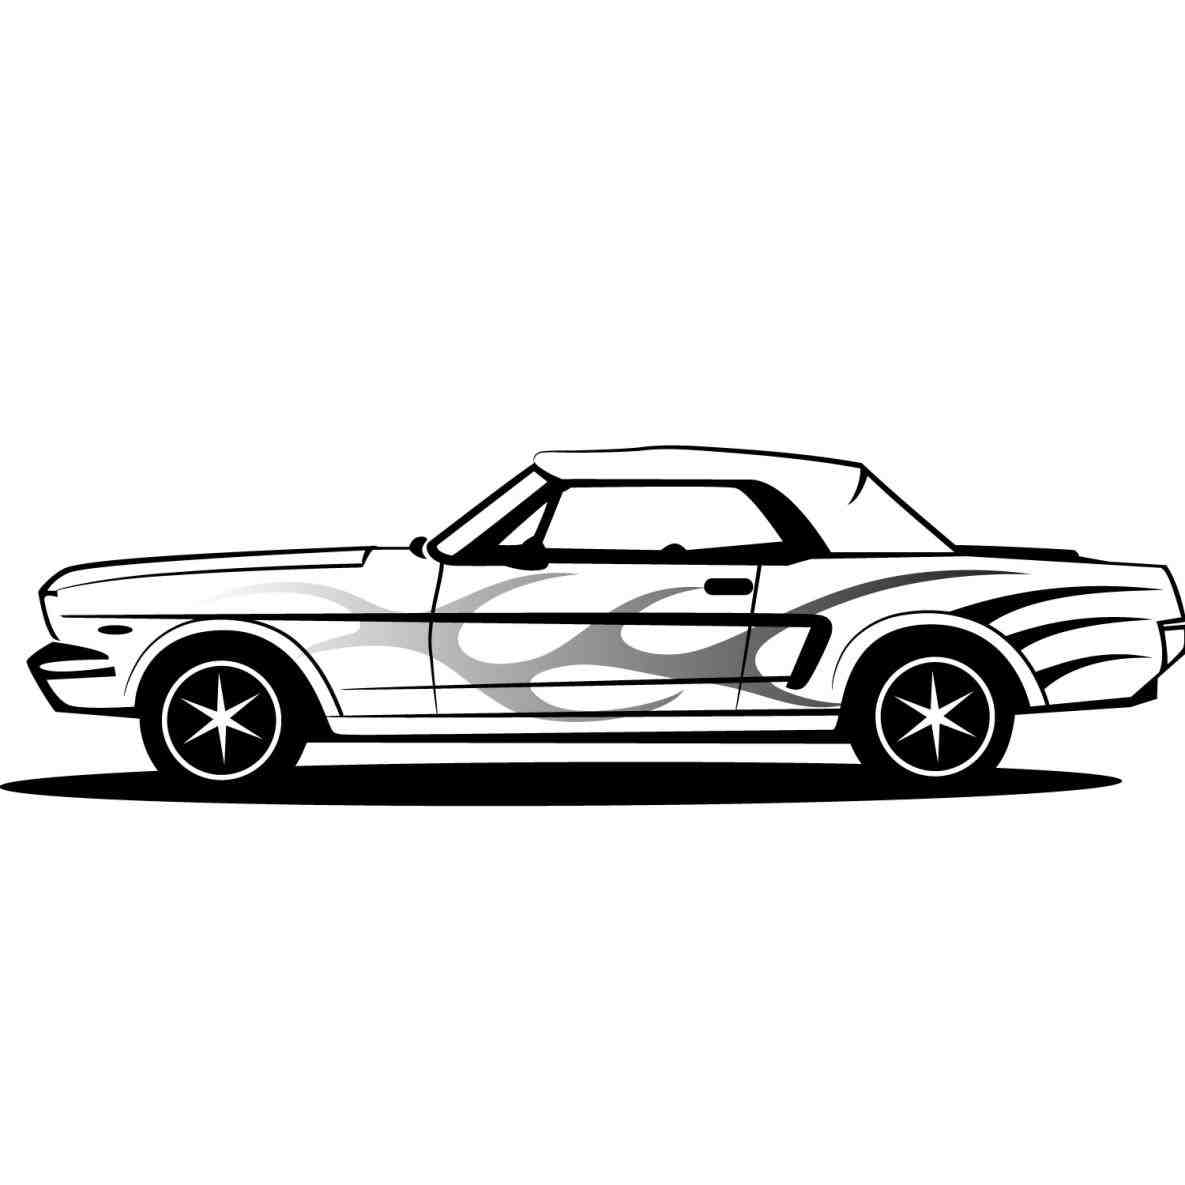 1185x1185 Mustang Silhouette Clip Art Cip S And Others Inspiration Vector